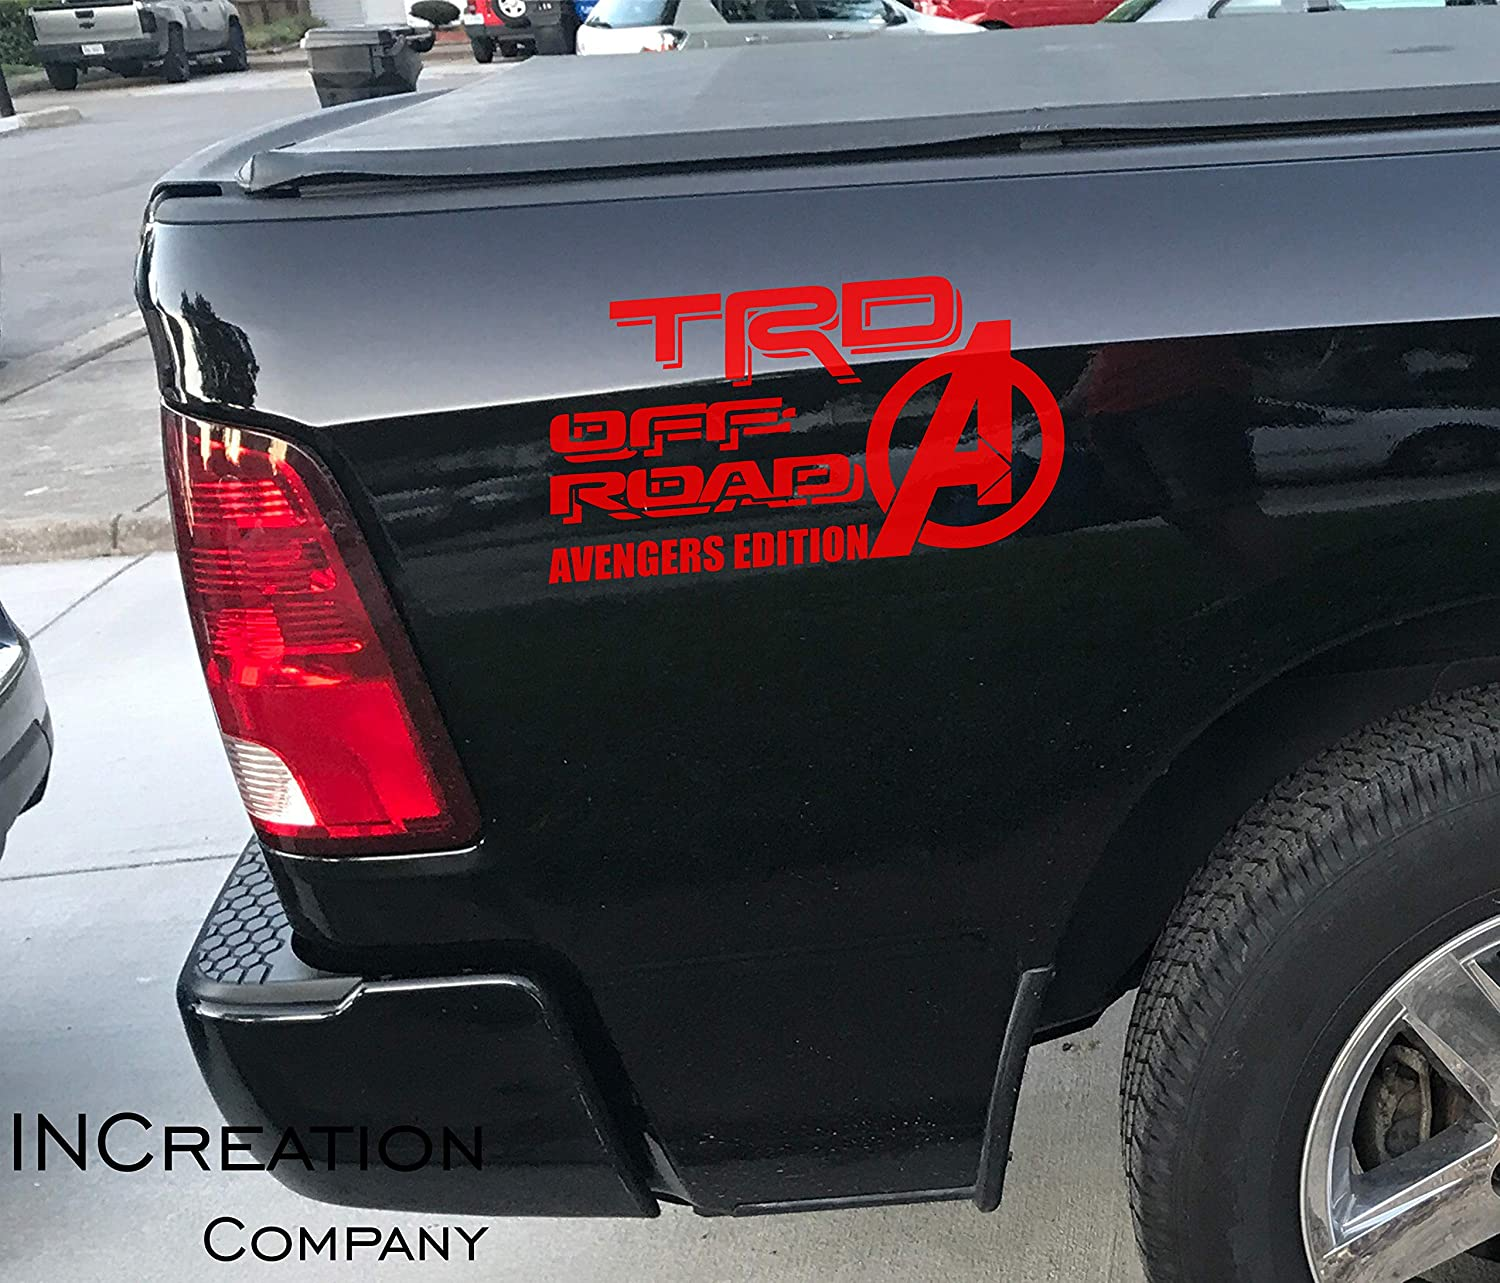 2019 TRD SPORT vinyl decals for Toyota Tacoma Tundra 4Runner Set of 2